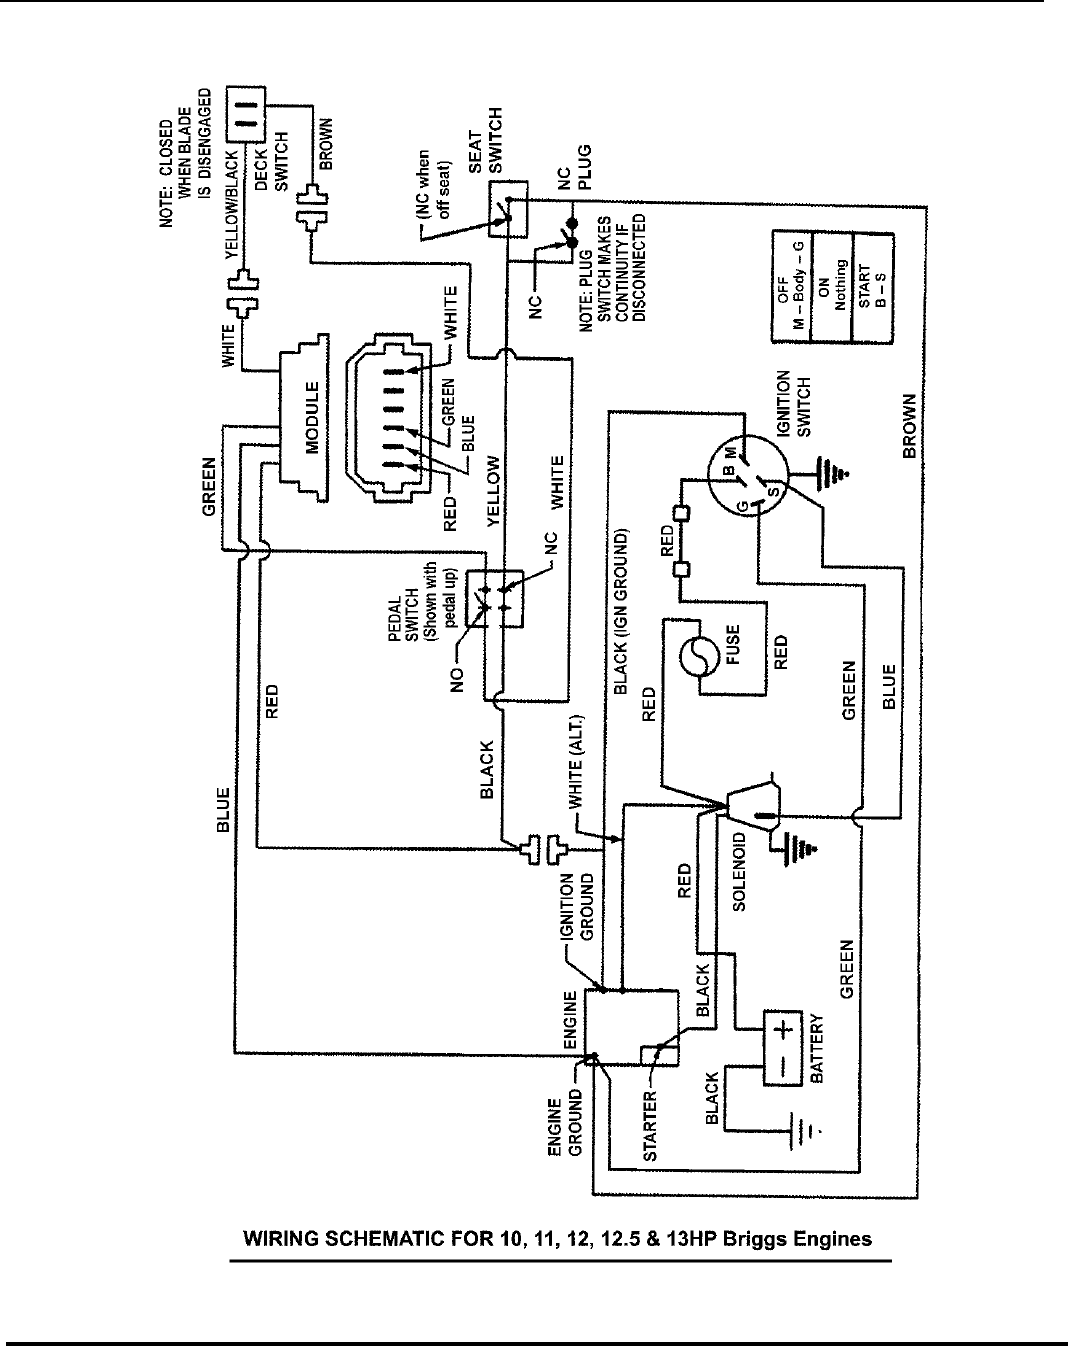 page 66 of snapper lawn mower 2812523bve (7800104) user cub cadet wiring diagram rear engine rider series 15